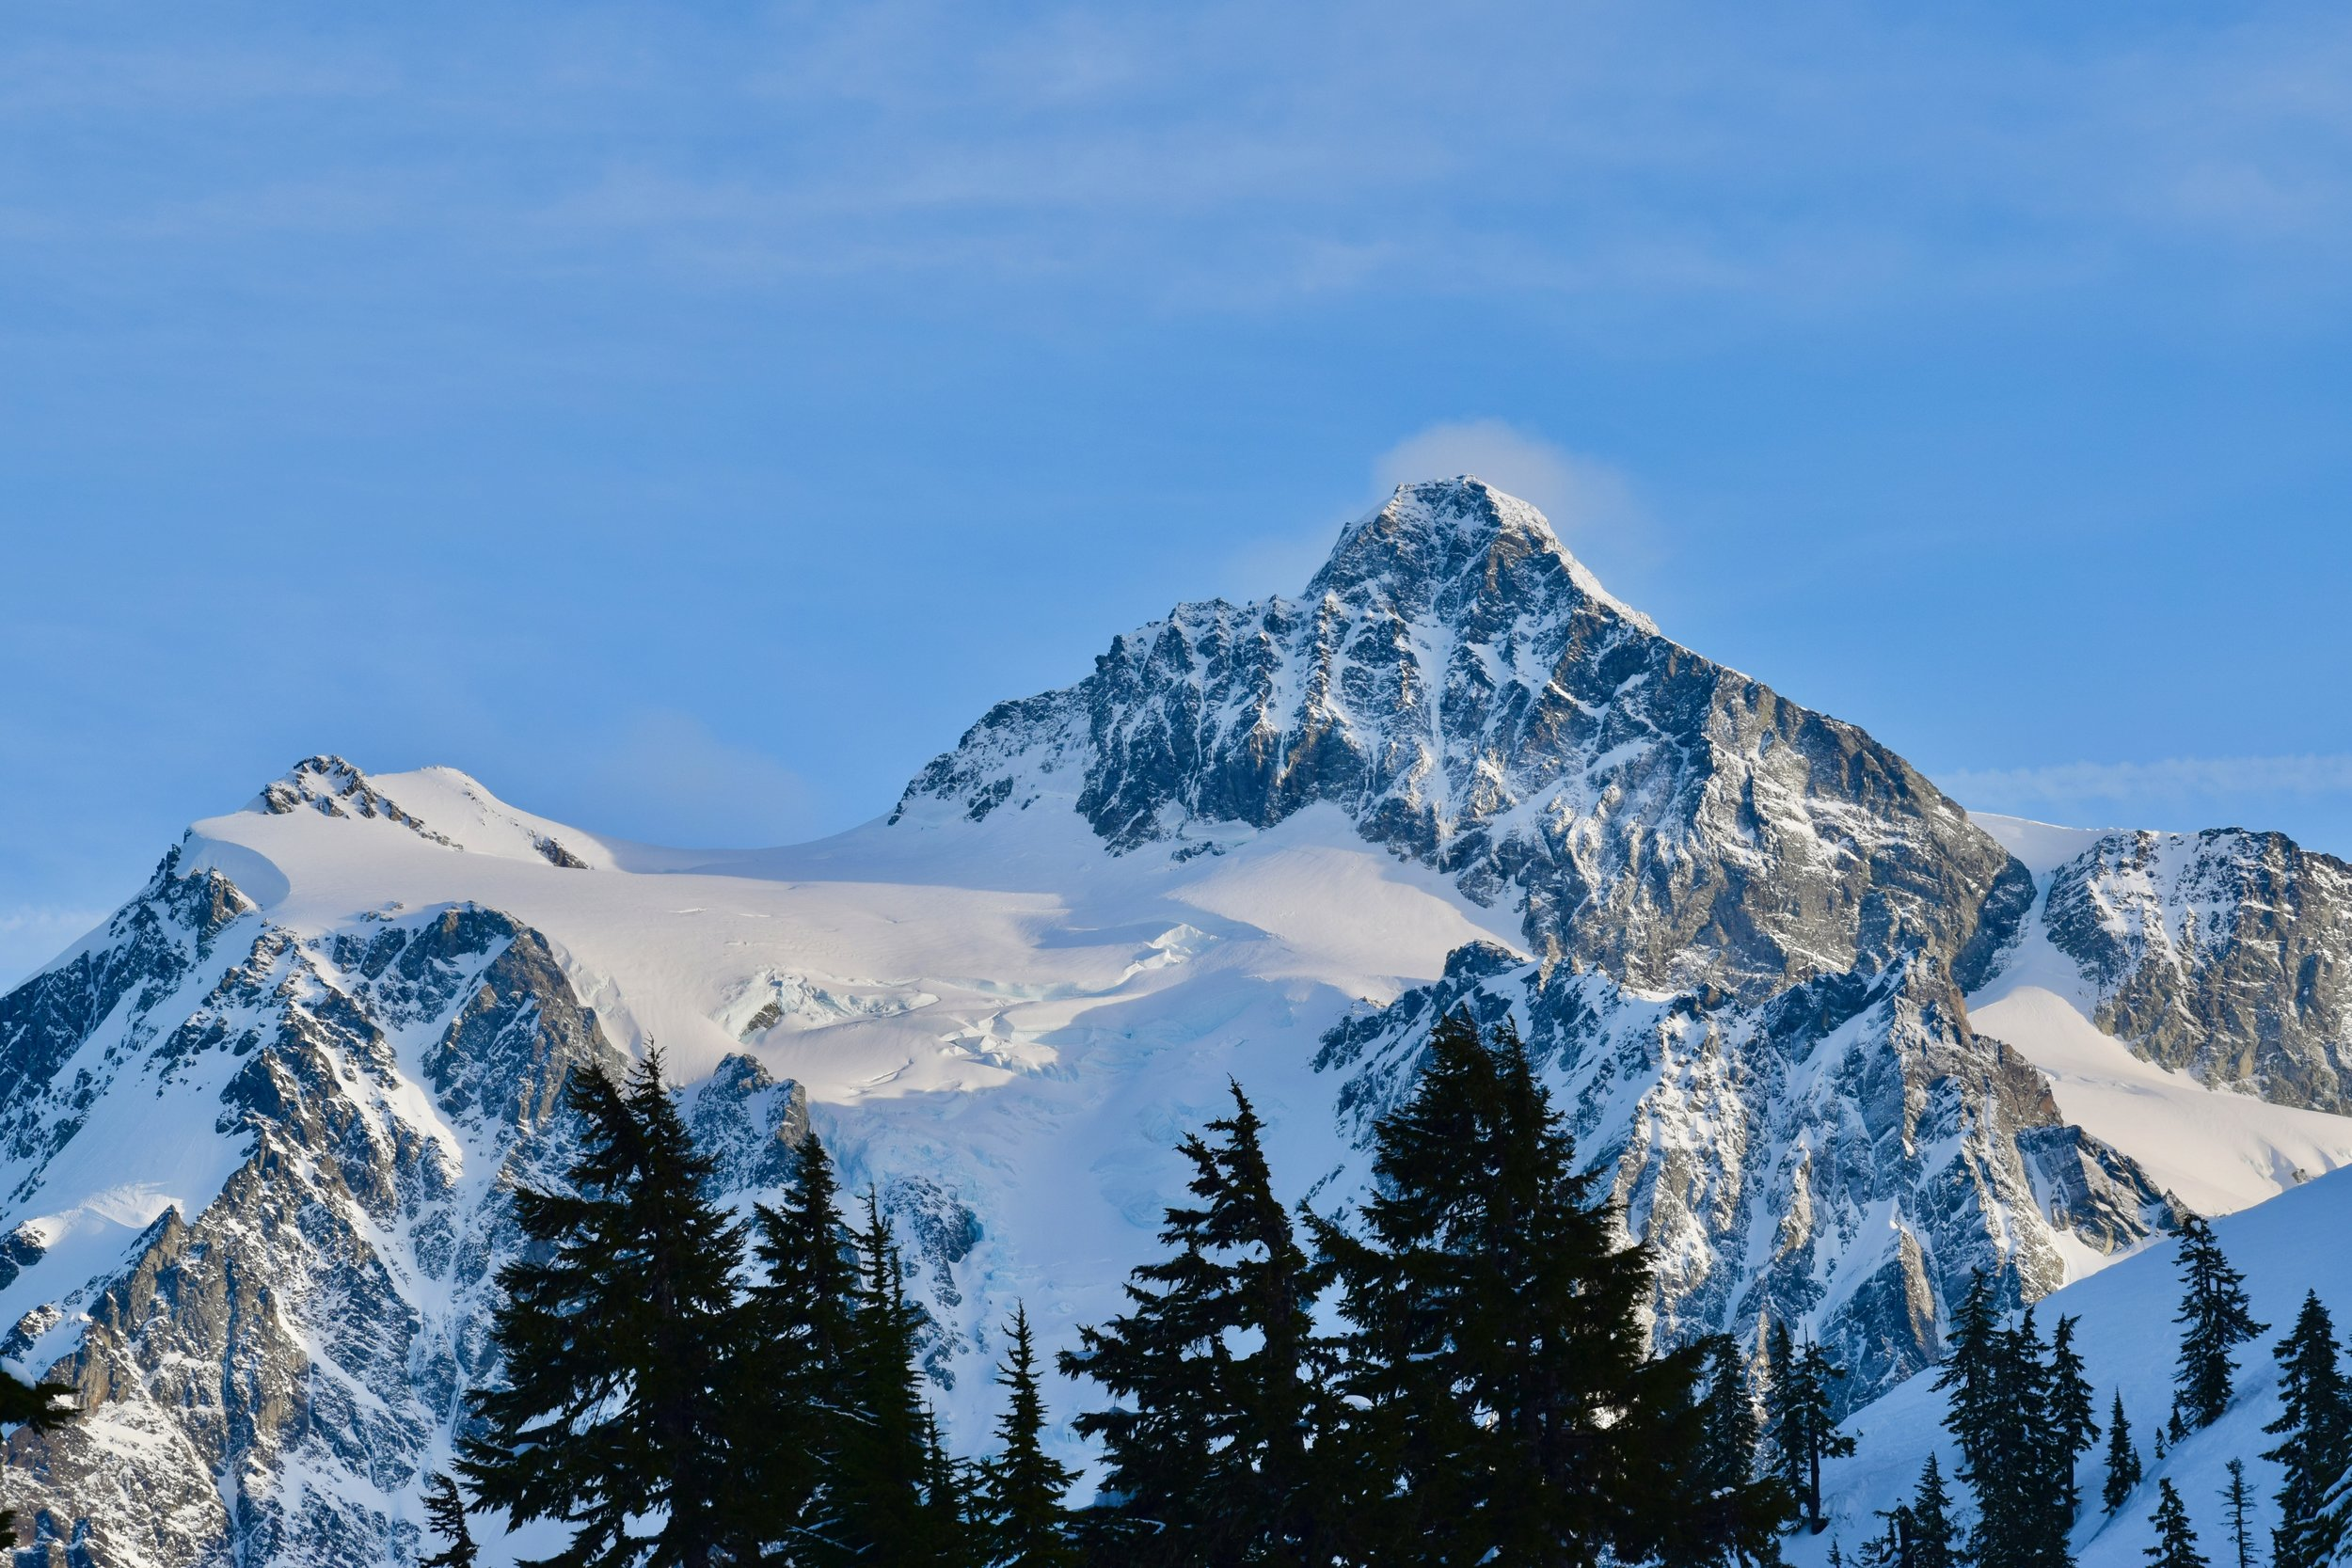 Mount Shuksan always inspires me with it's sheer beauty and obvious awesomeness.